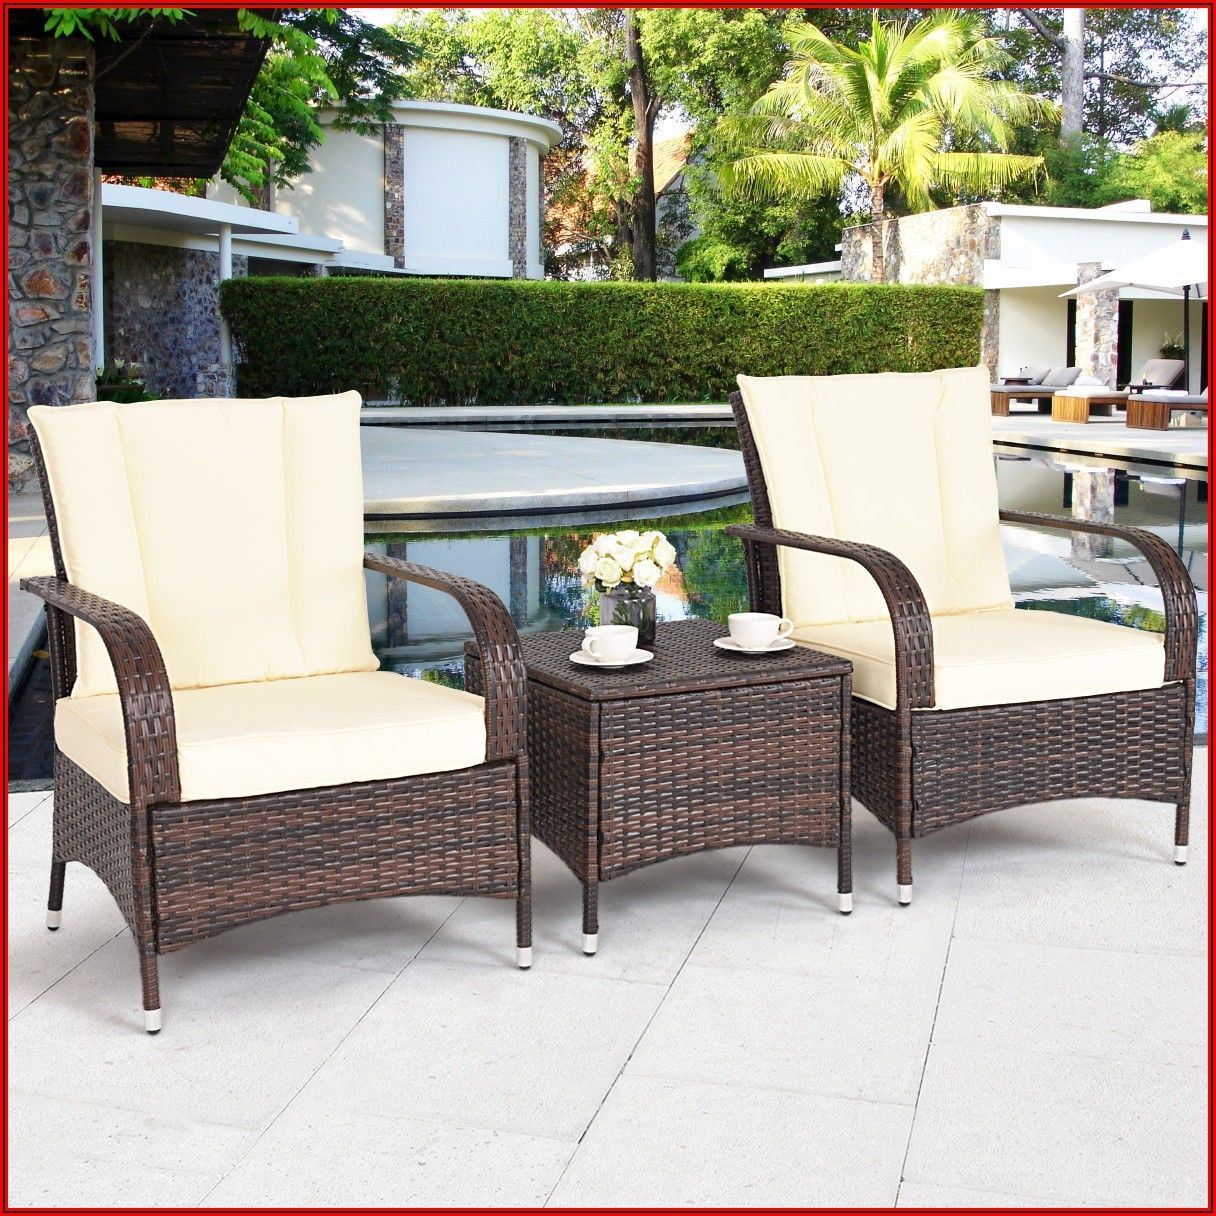 Alpha Mart Patio Furniturealpha Mart Patio Furniture